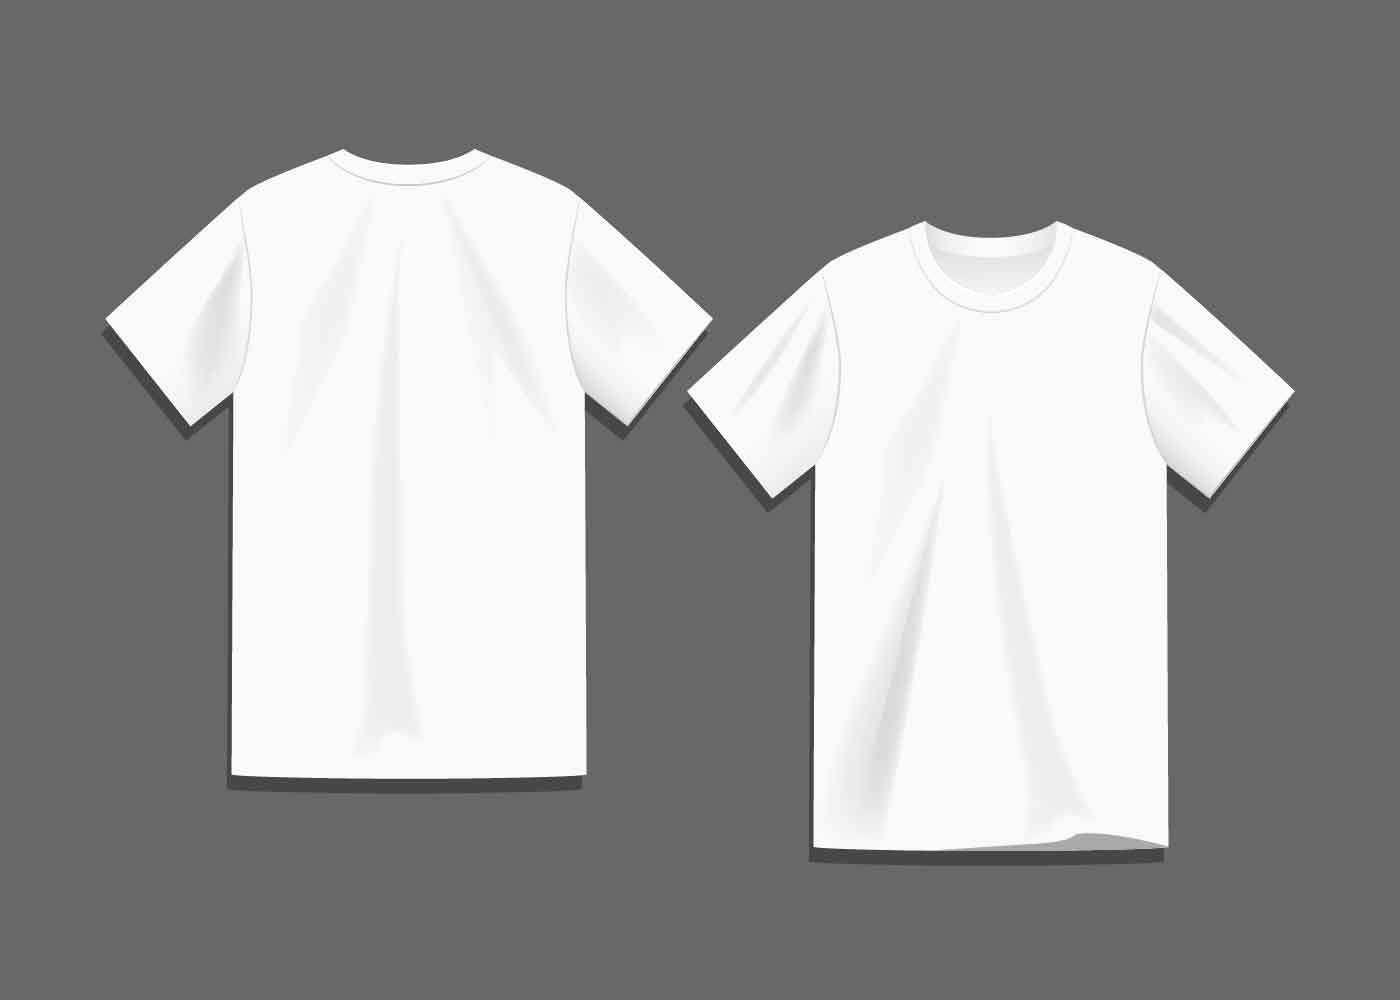 White Blank T Shirt Template Vector Download Free Vector